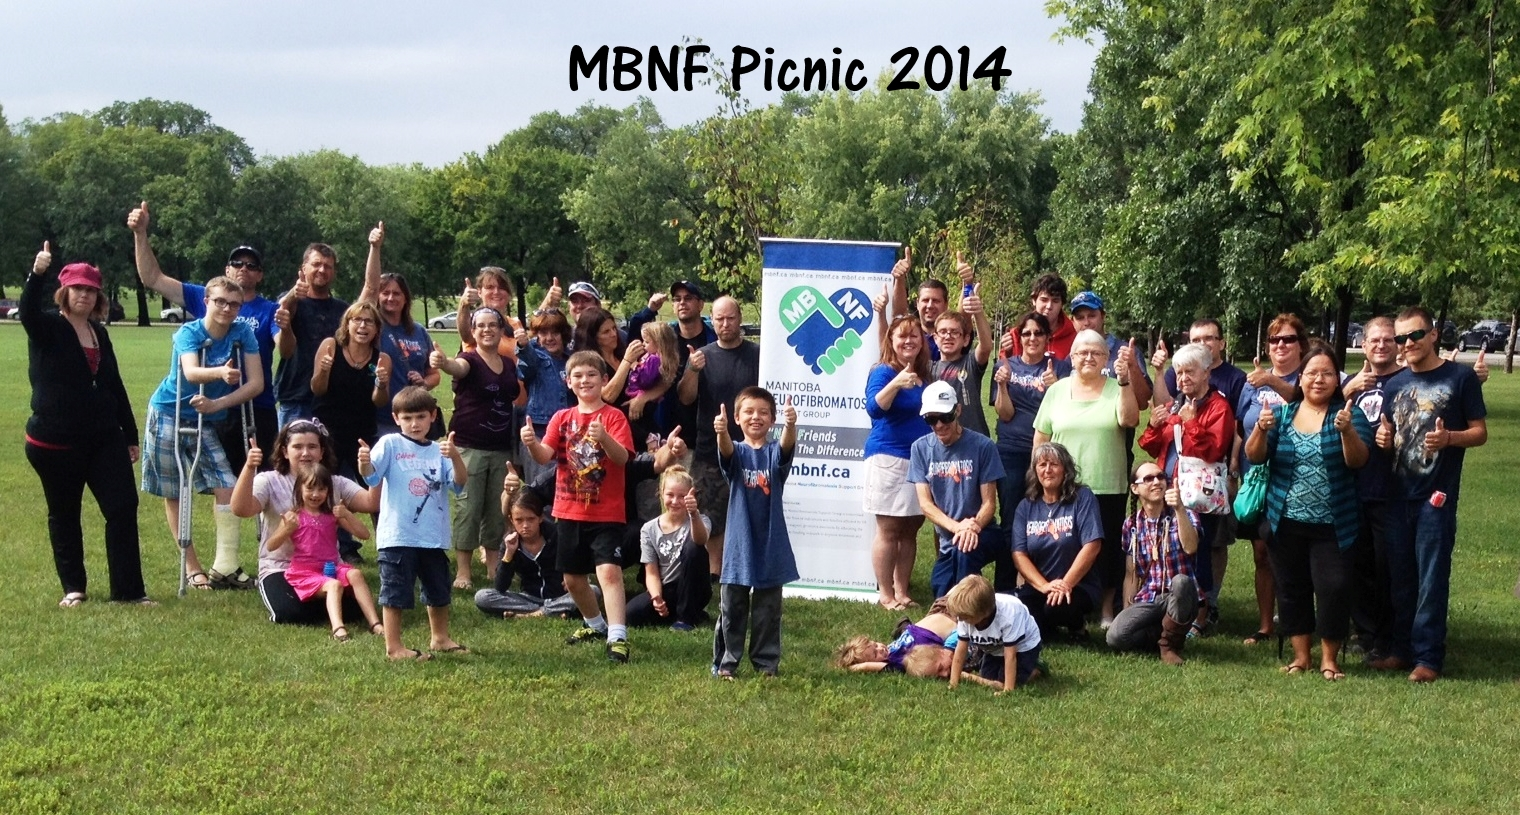 MBNF Picnic website